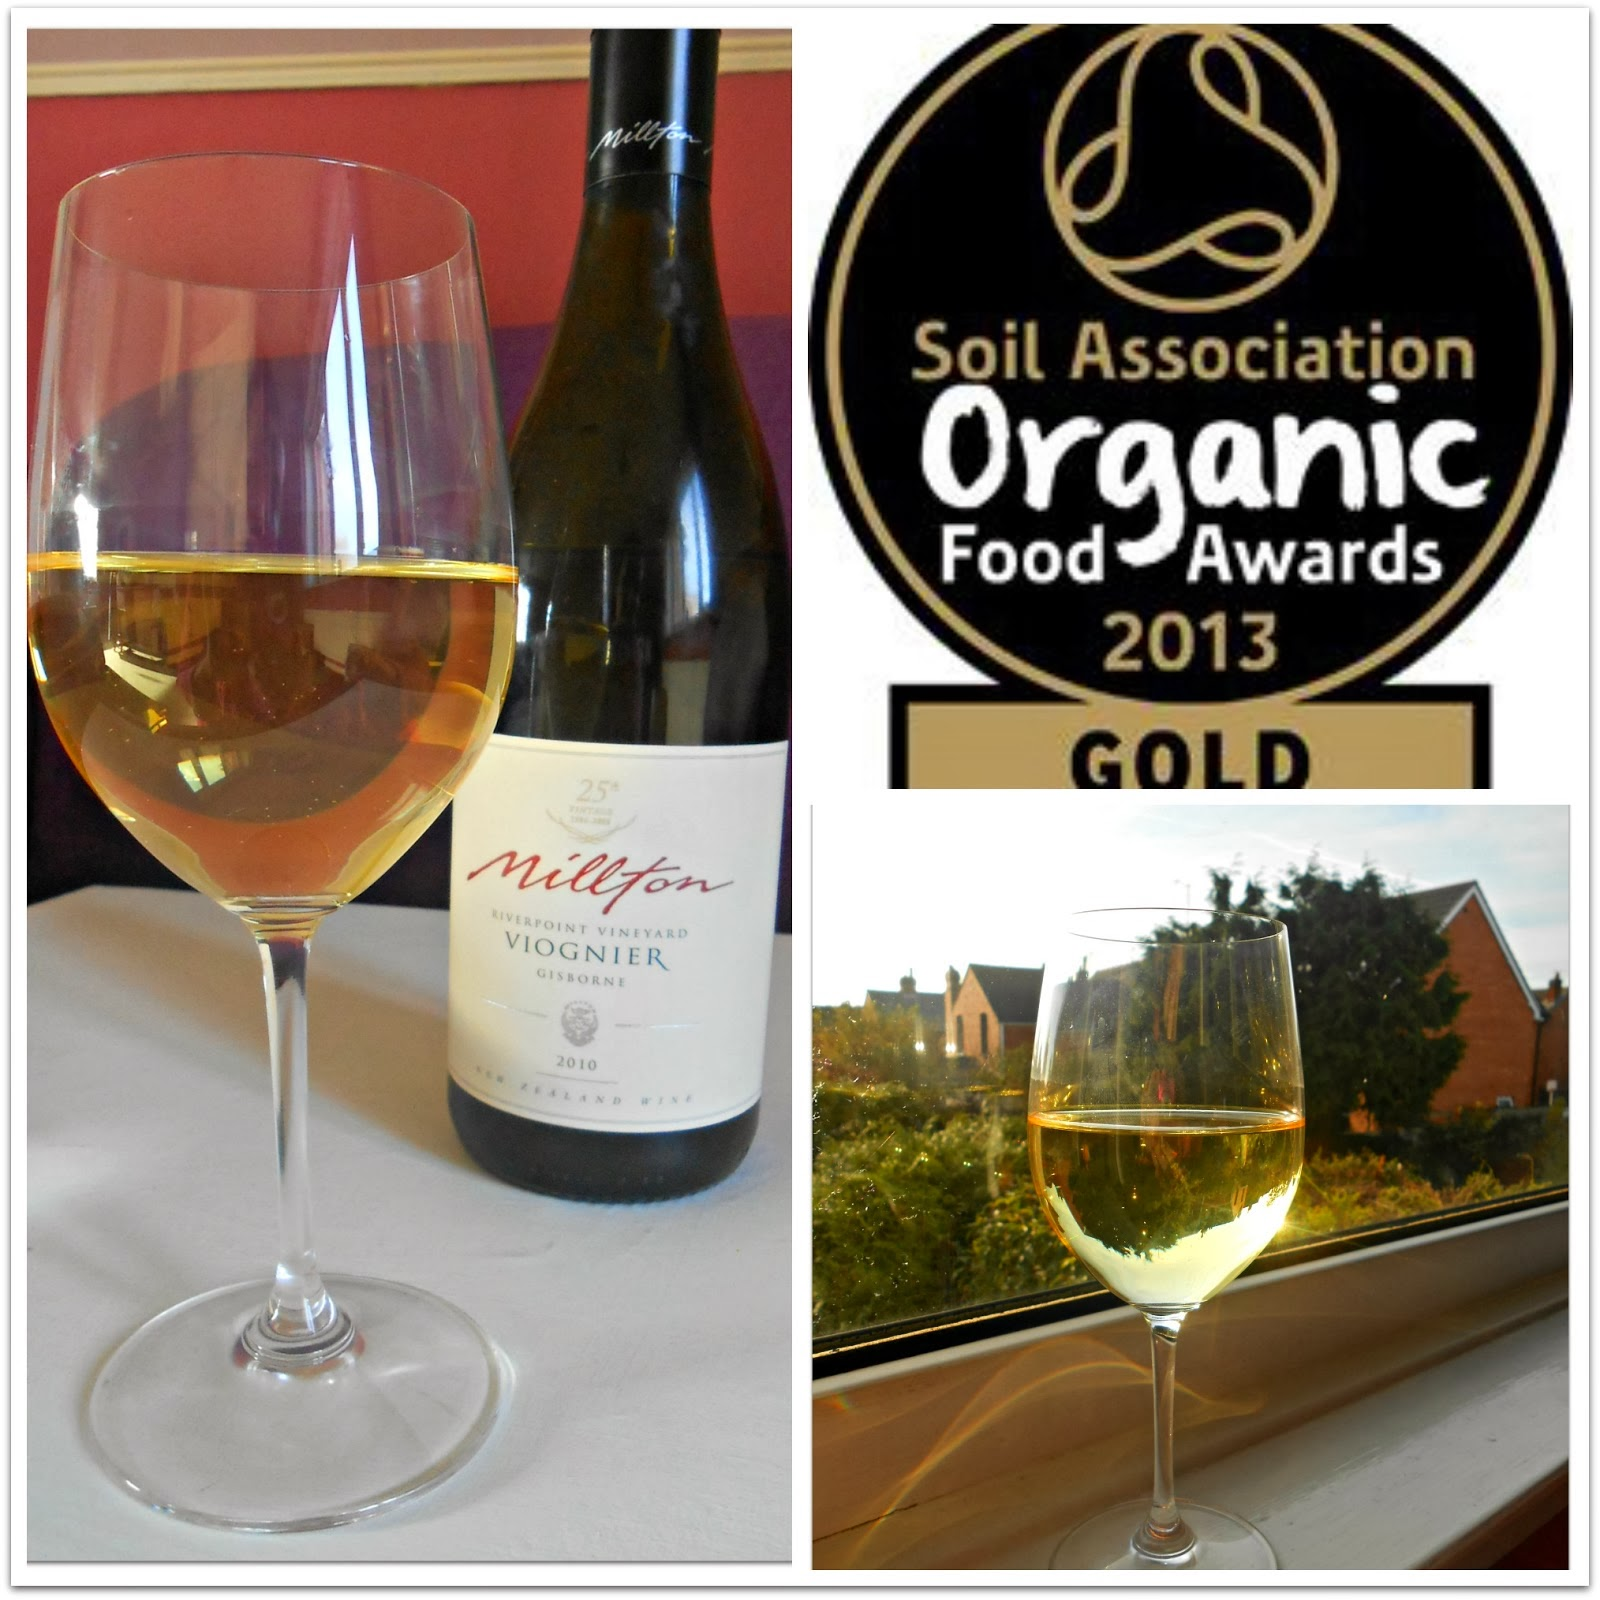 Millton Vineyards Riverpoint Viognier Organic White Wine